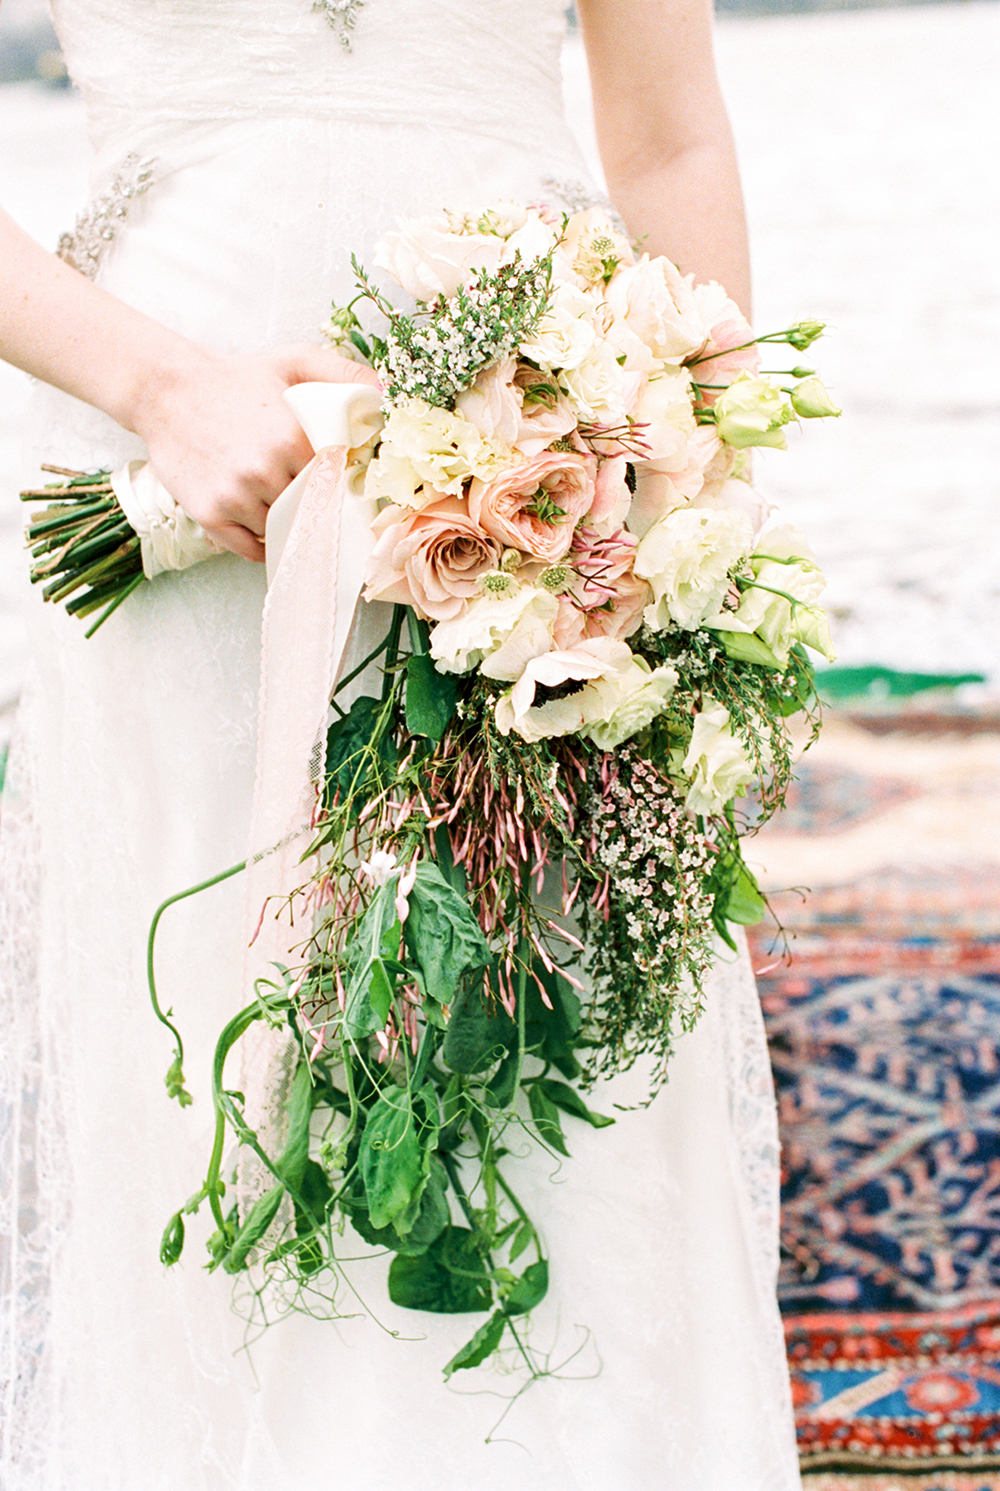 romantic wedding bouquets - photo by Alexis June Weddings http://ruffledblog.com/for-the-love-of-copper-wedding-inspiration